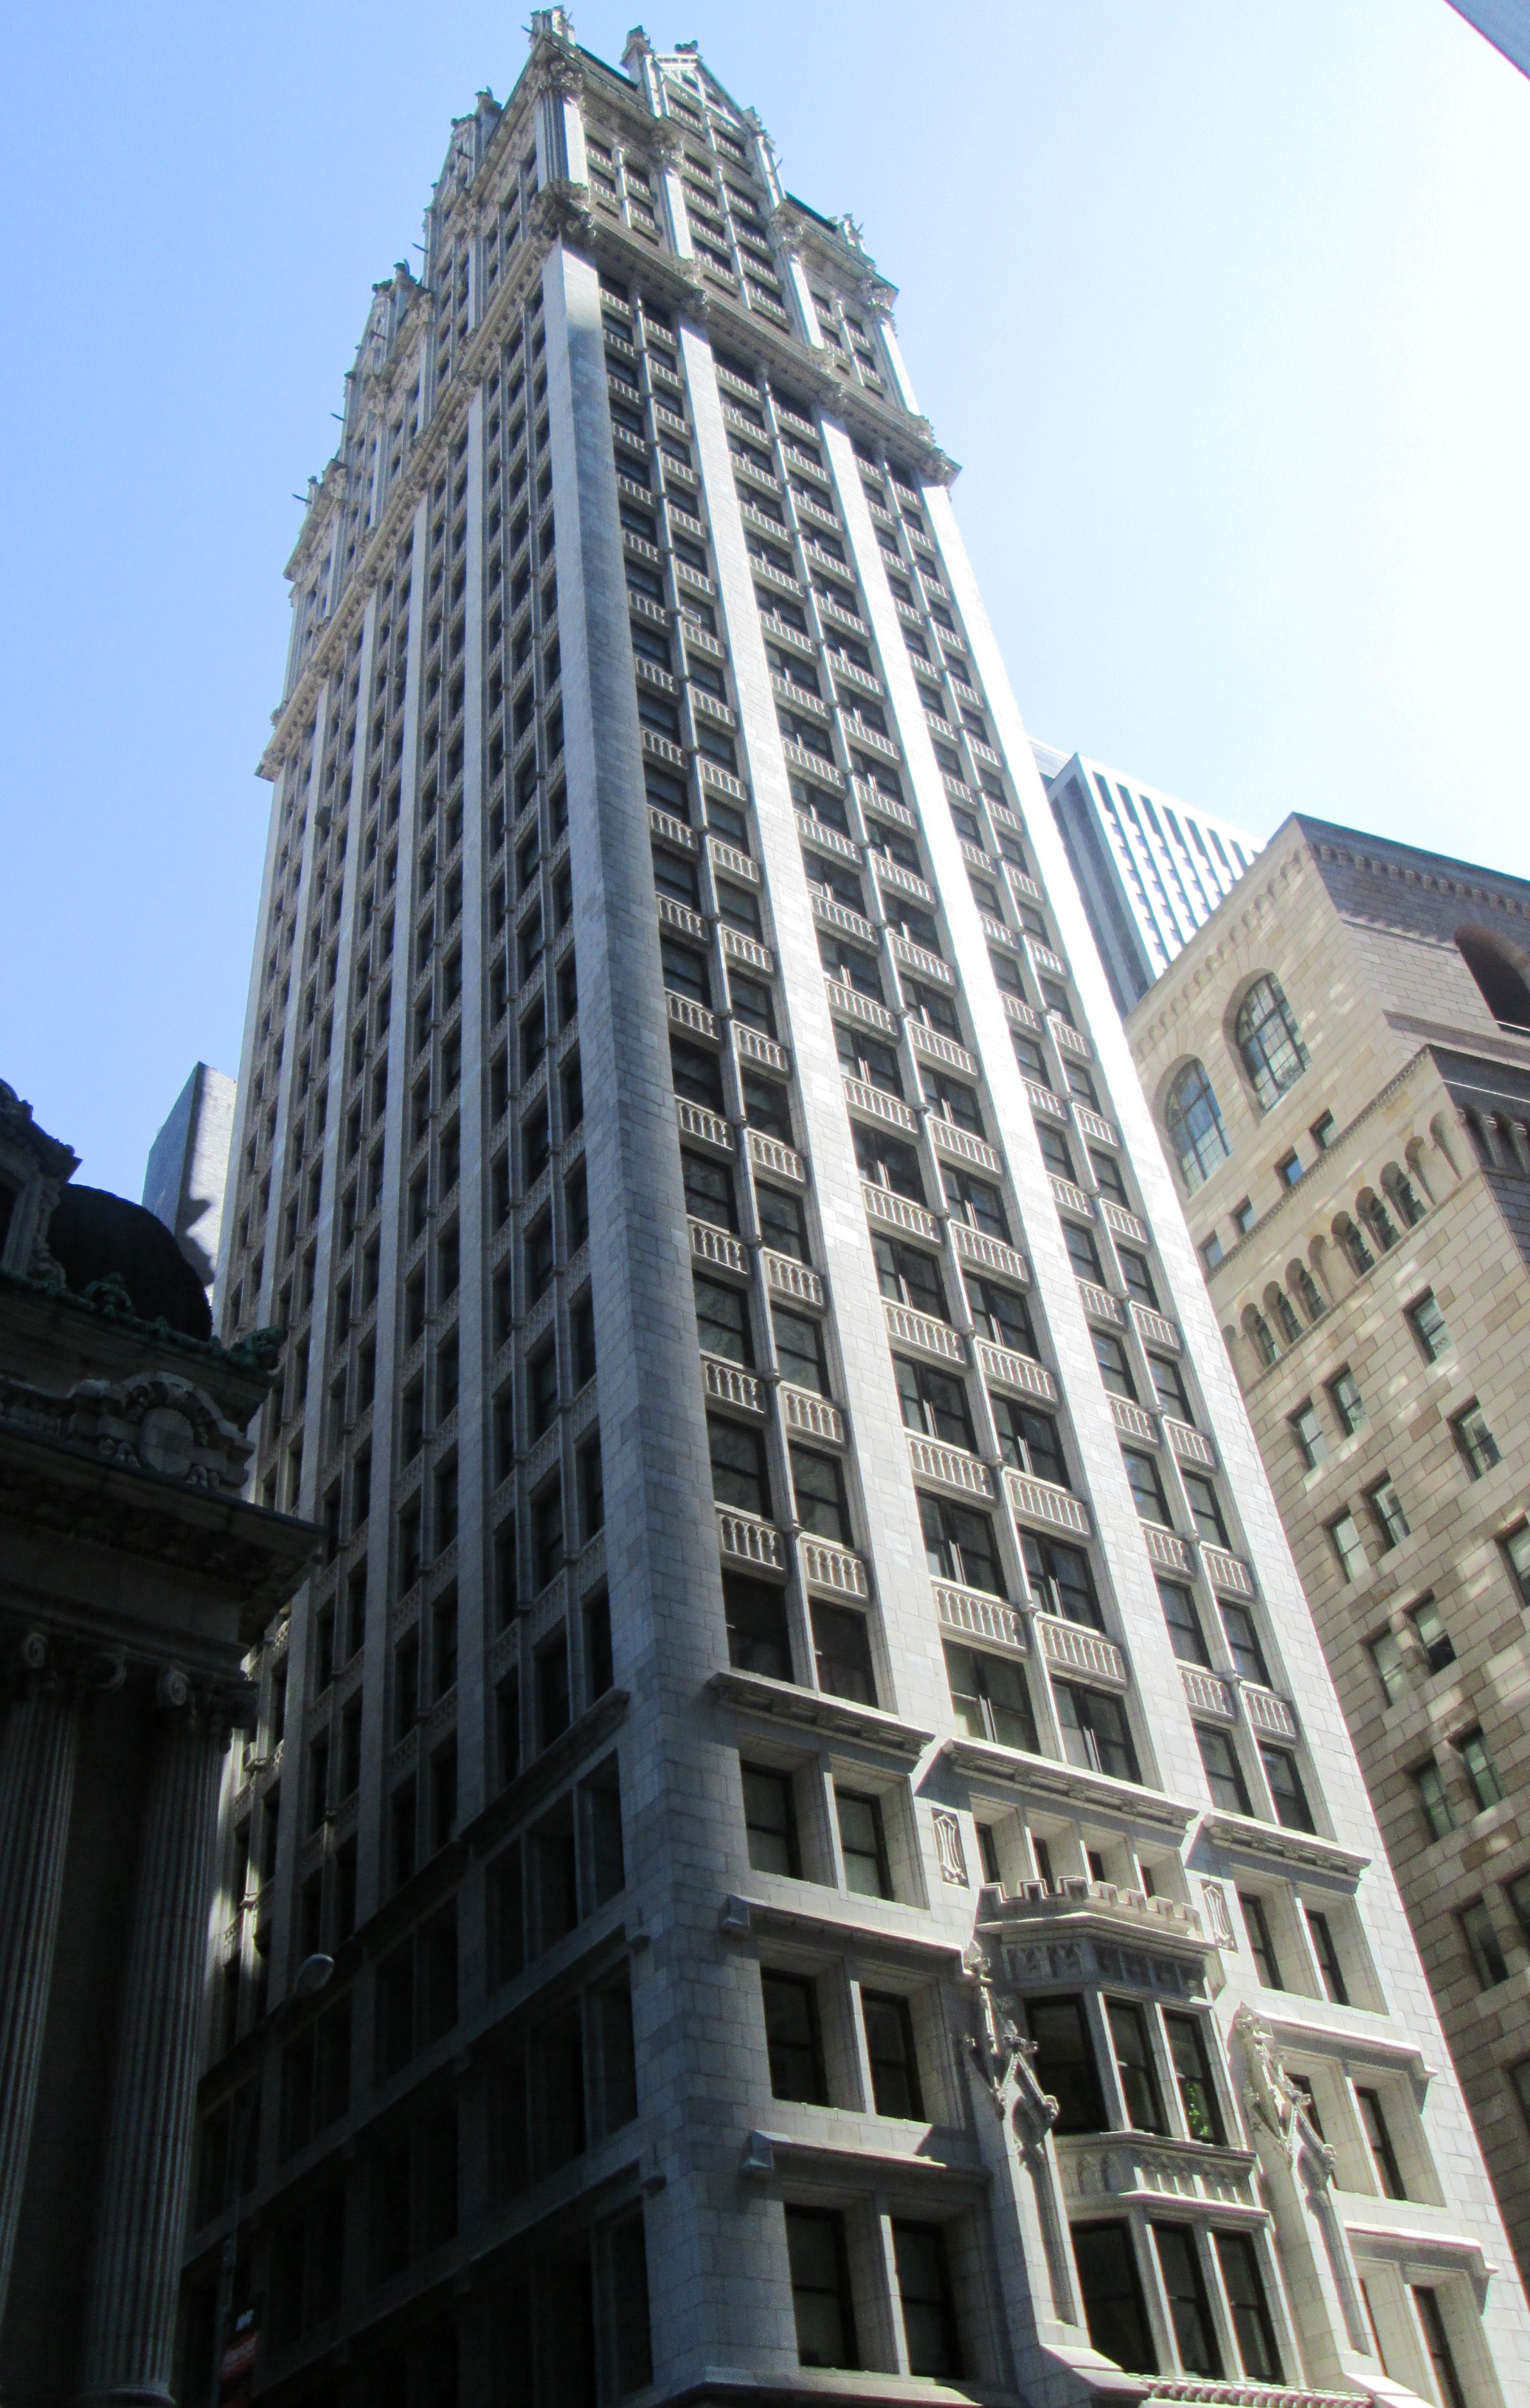 55 Liberty Street, where the law offices of Vahan Cardashian were located in the early 1910s; the Liberty Tower is currently a residential building